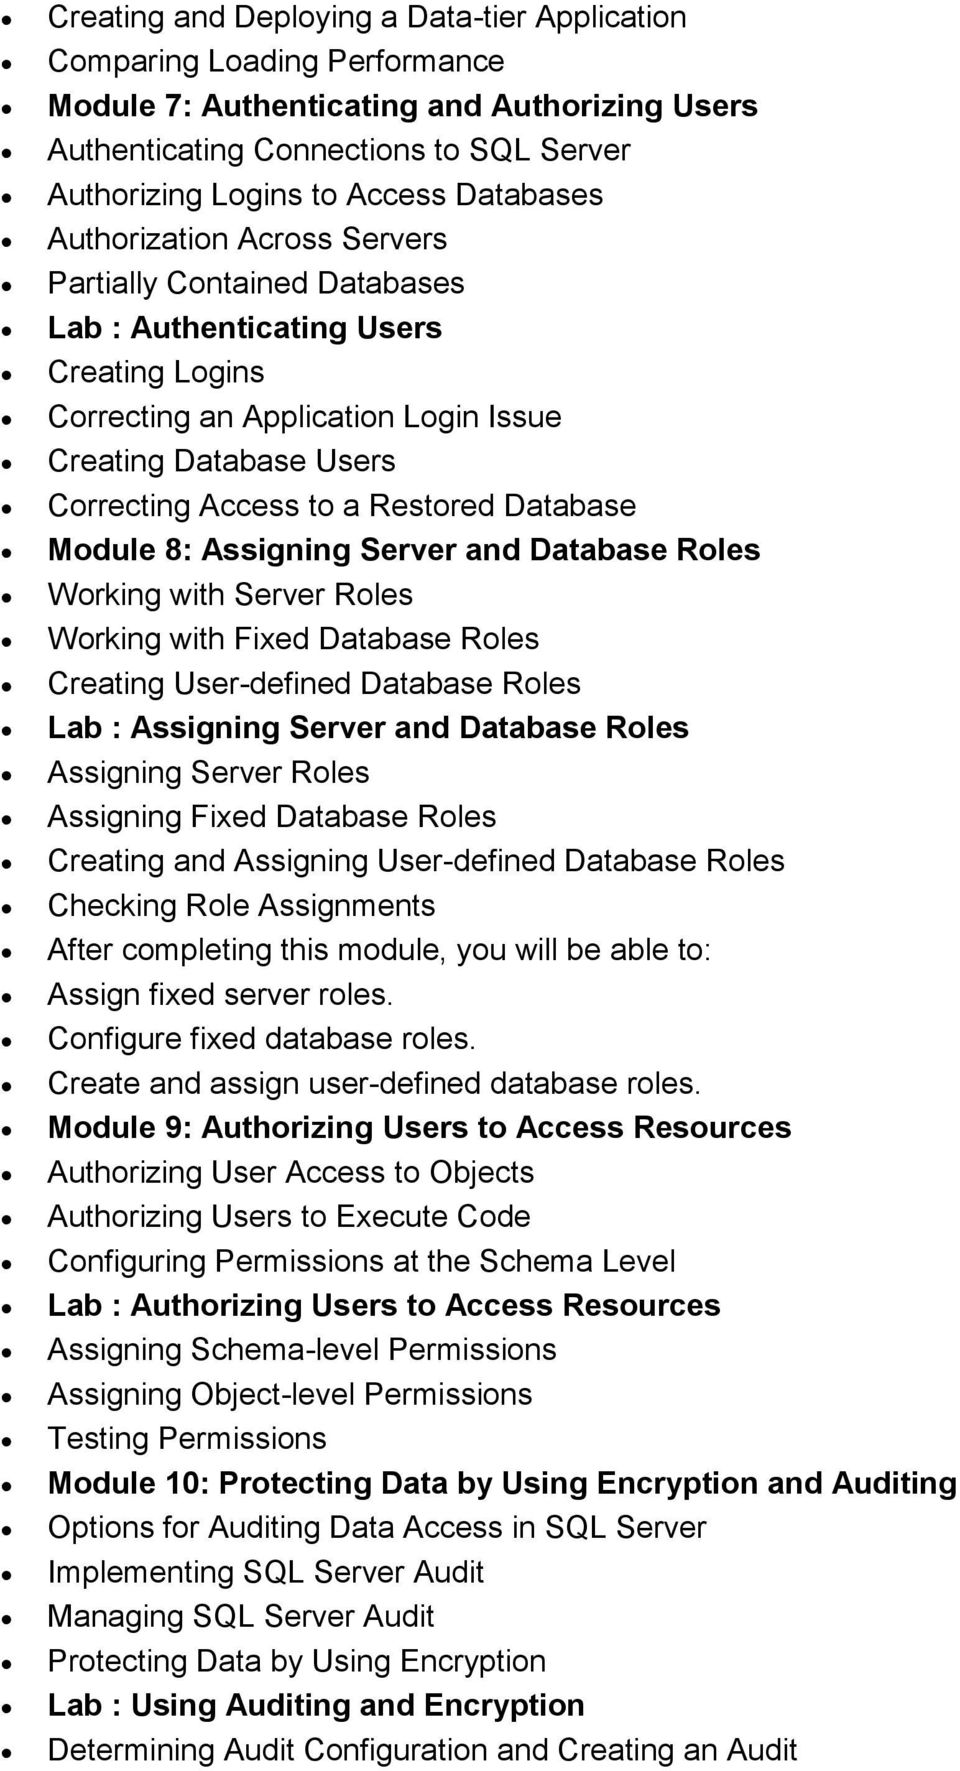 Restored Database Module 8: Assigning Server and Database Roles Working with Server Roles Working with Fixed Database Roles Creating User-defined Database Roles Lab : Assigning Server and Database